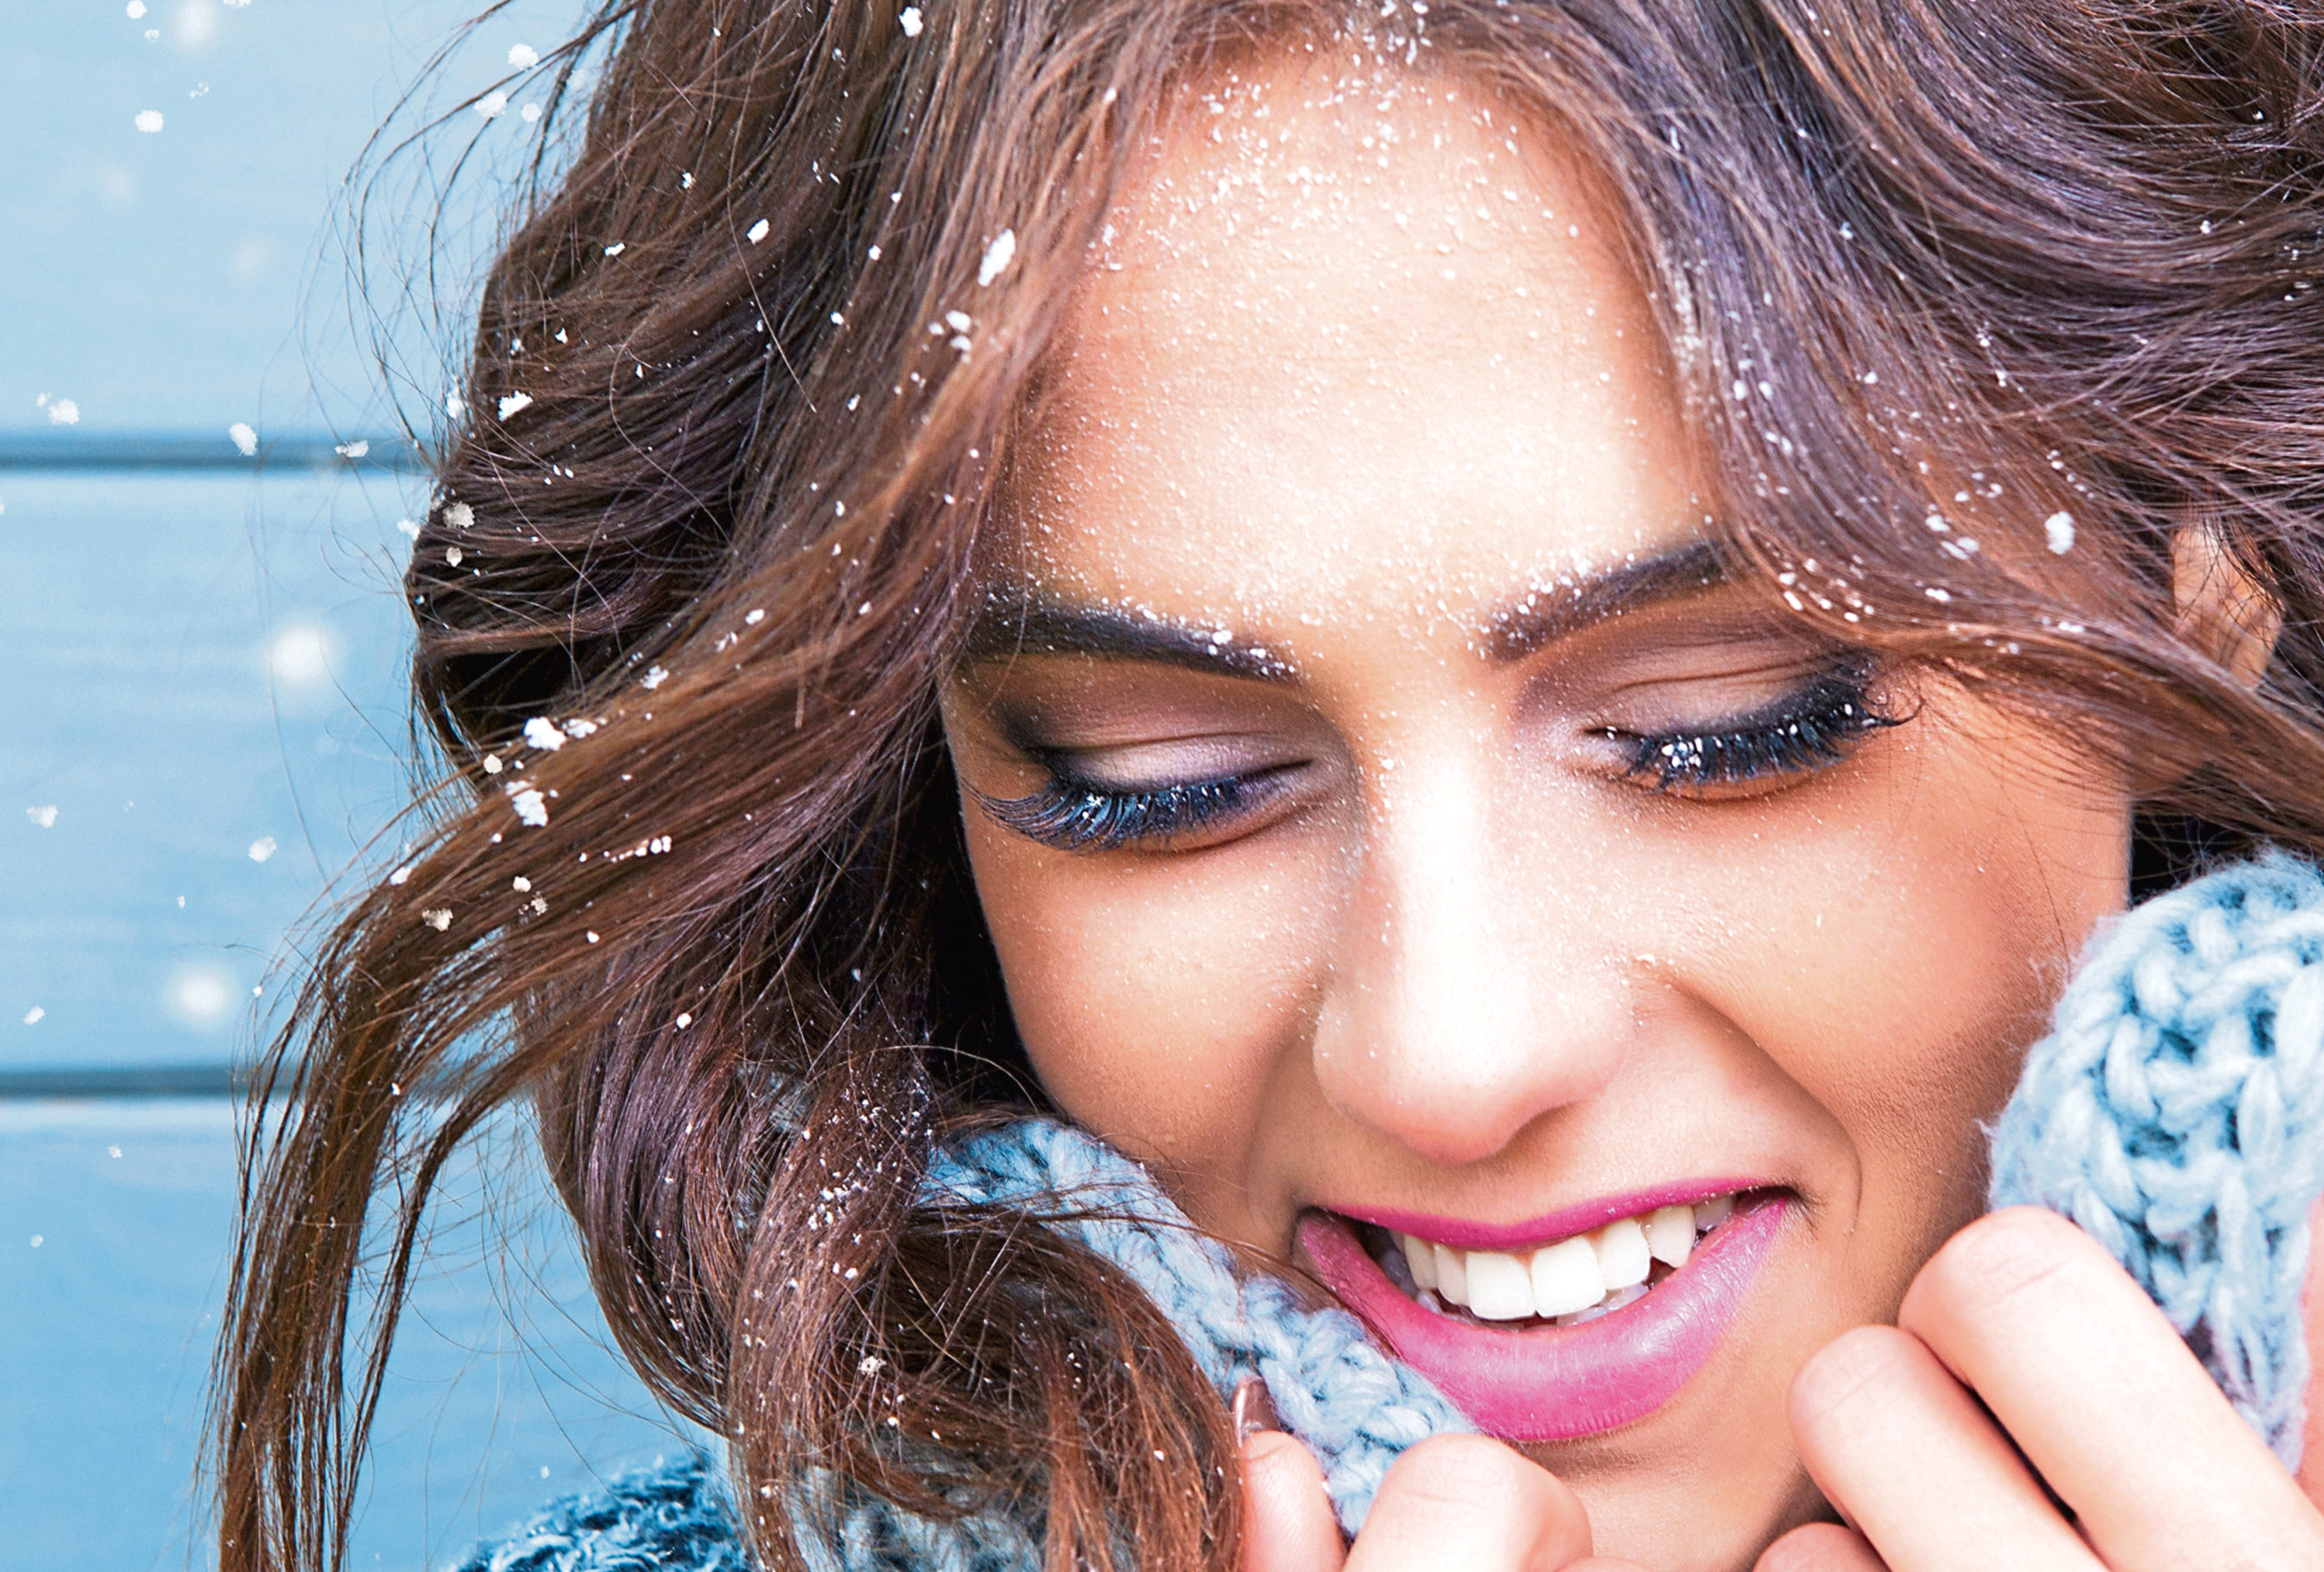 The winter can play havoc with your skin